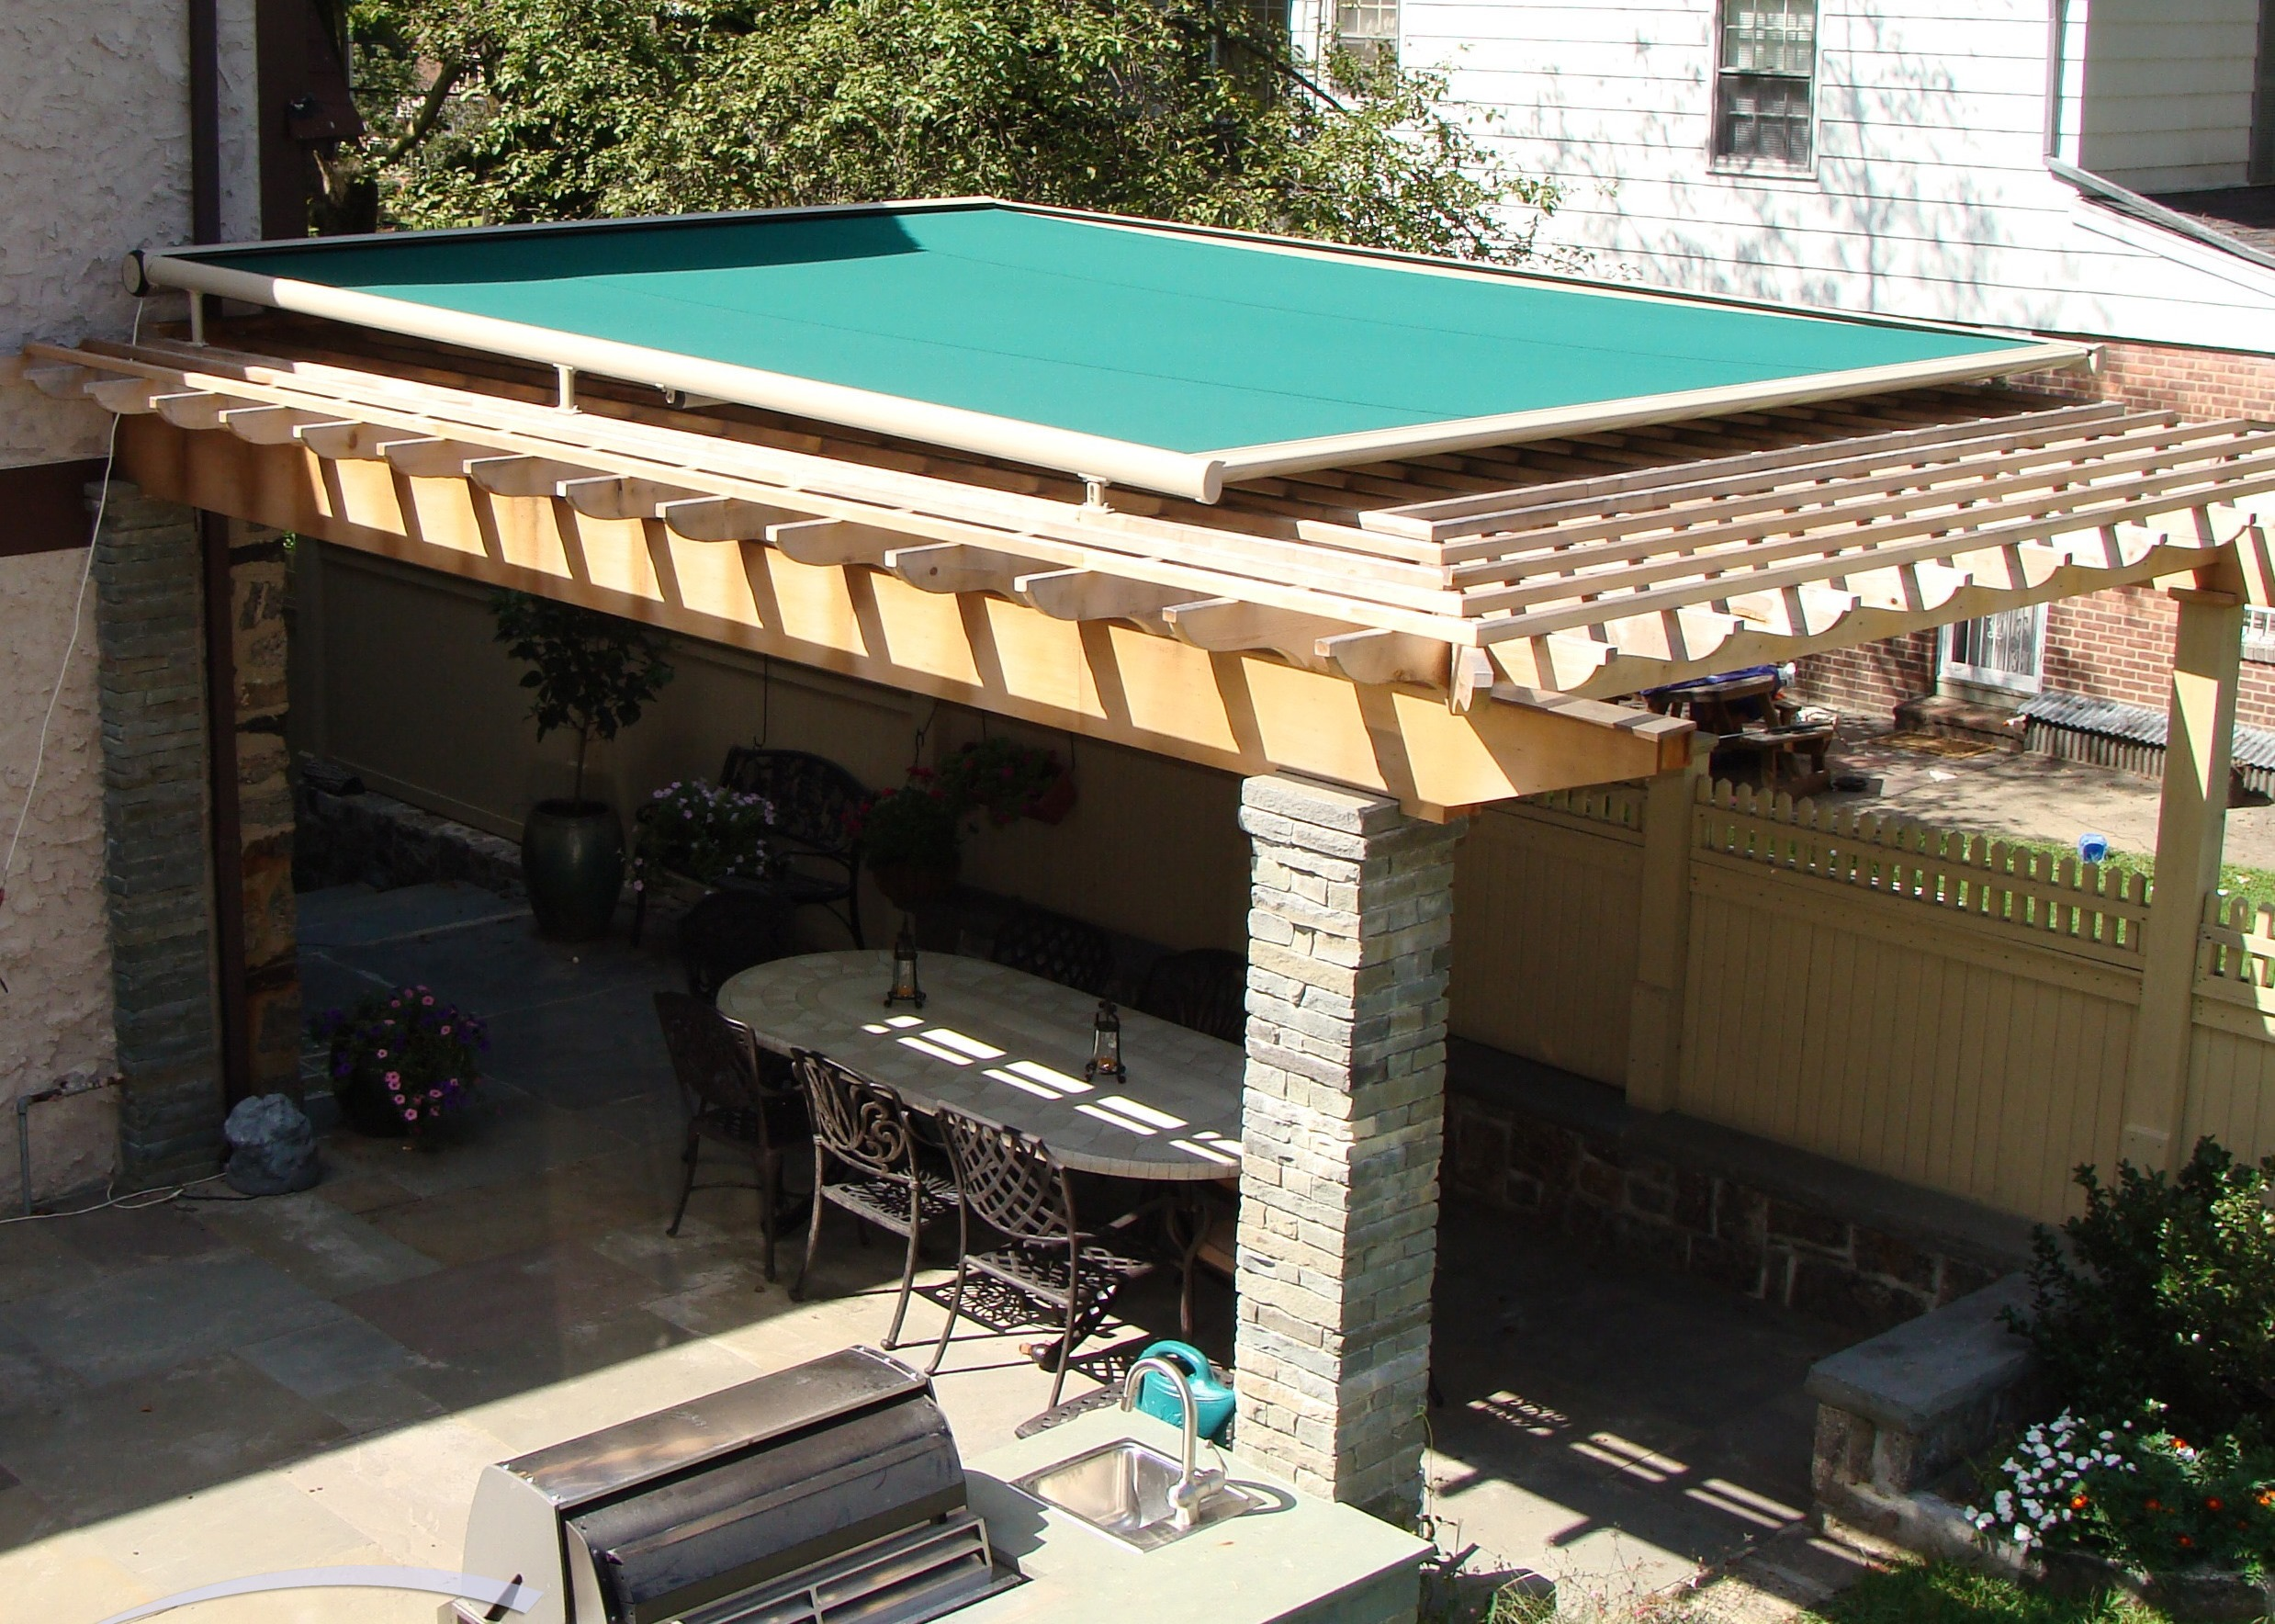 Green Motorized Retractable Canopy